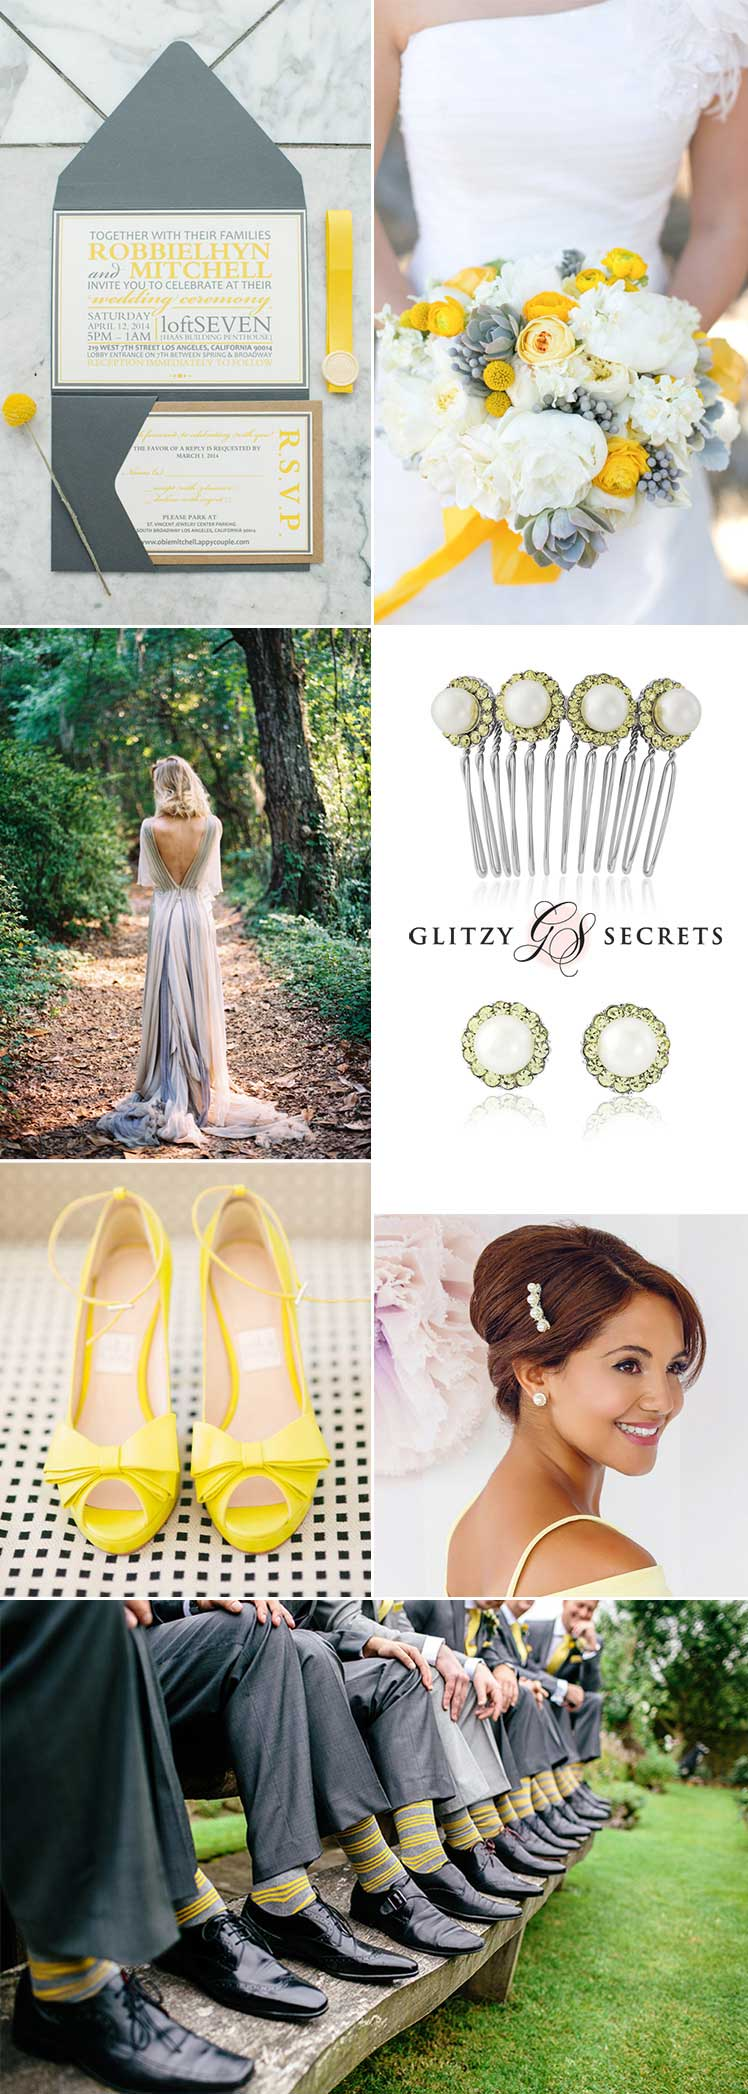 Grey and yellow theme wedding ideas and inspiration